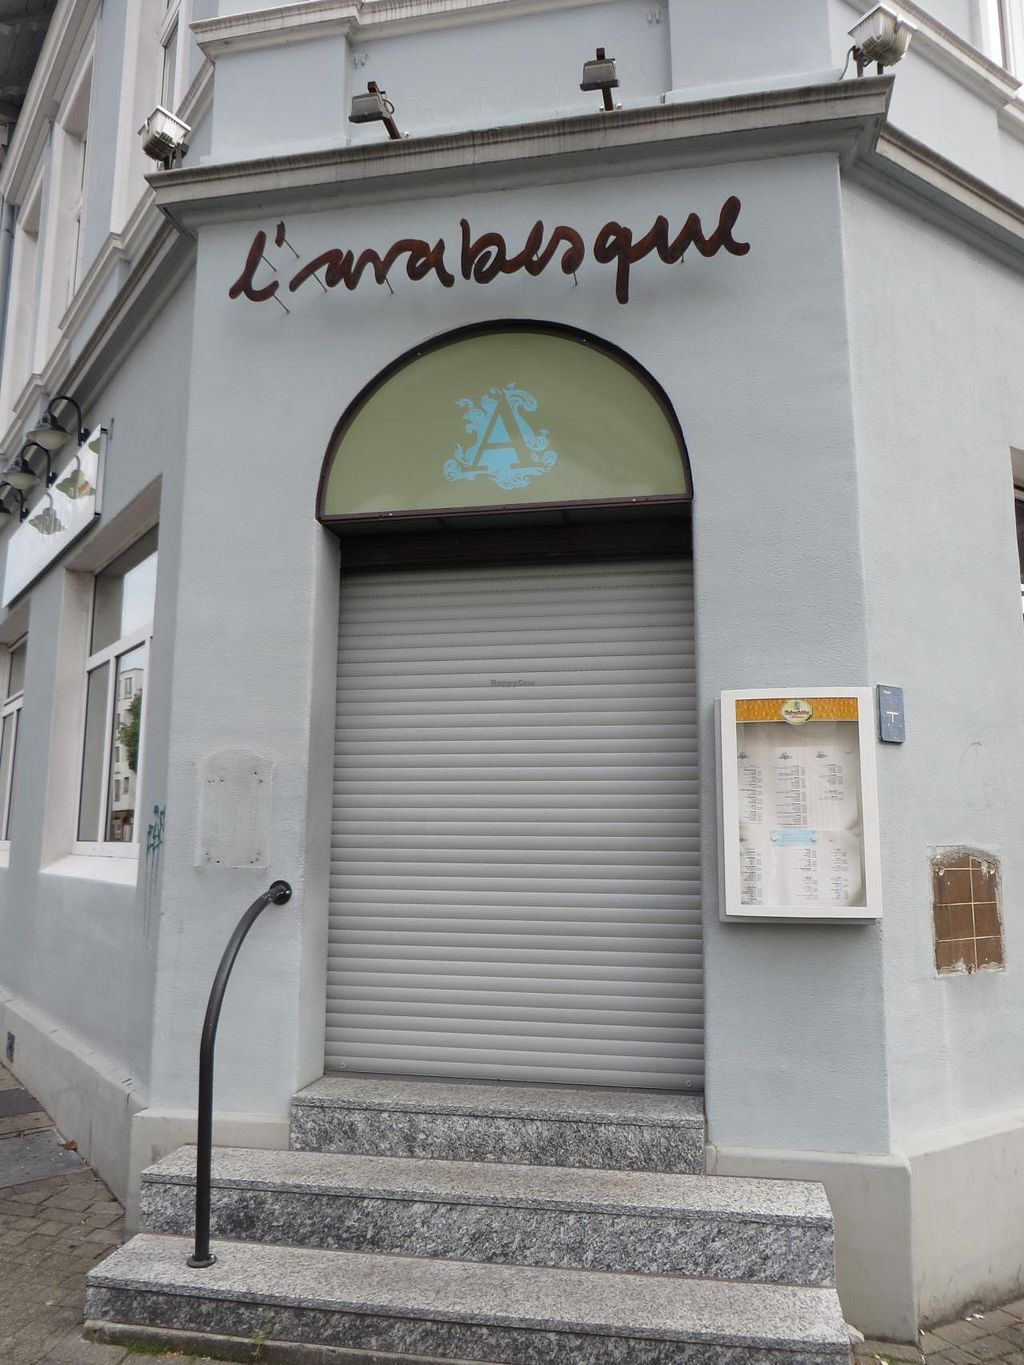 """Photo of L'arabesque  by <a href=""""/members/profile/VegiAnna"""">VegiAnna</a> <br/>entrance <br/> September 22, 2014  - <a href='/contact/abuse/image/36254/80647'>Report</a>"""